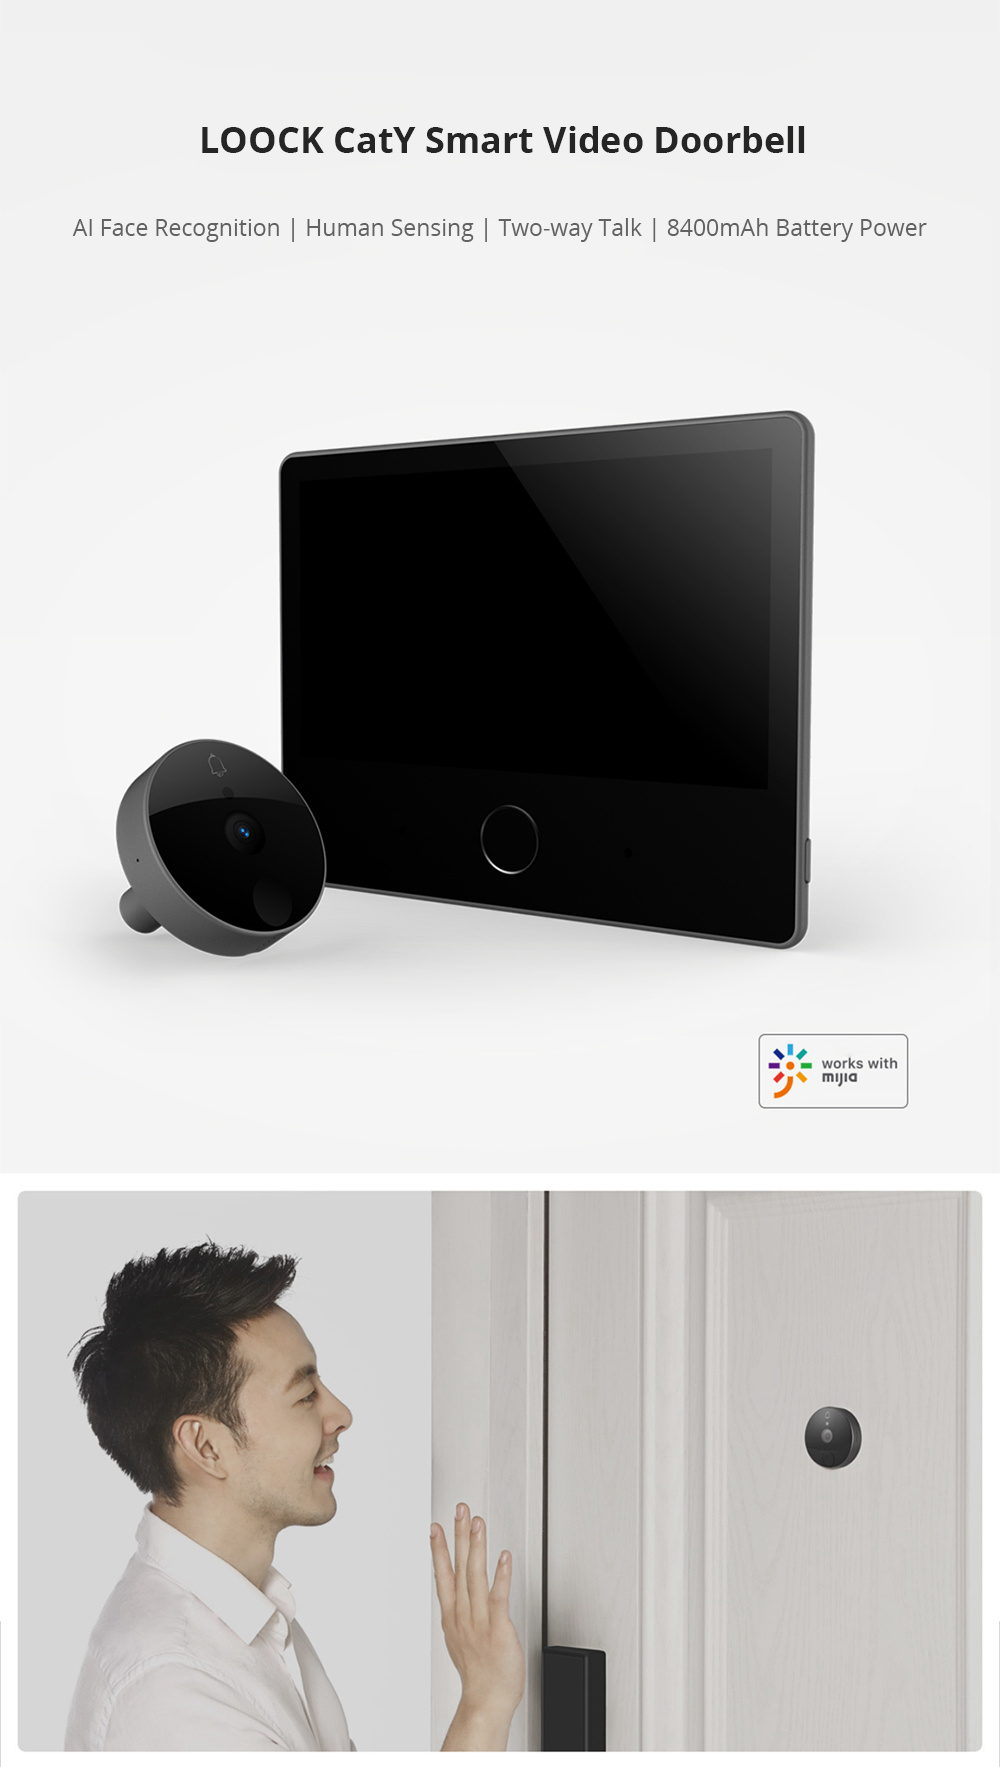 xiaomi loock caty lsc-y01 smart video doorbell